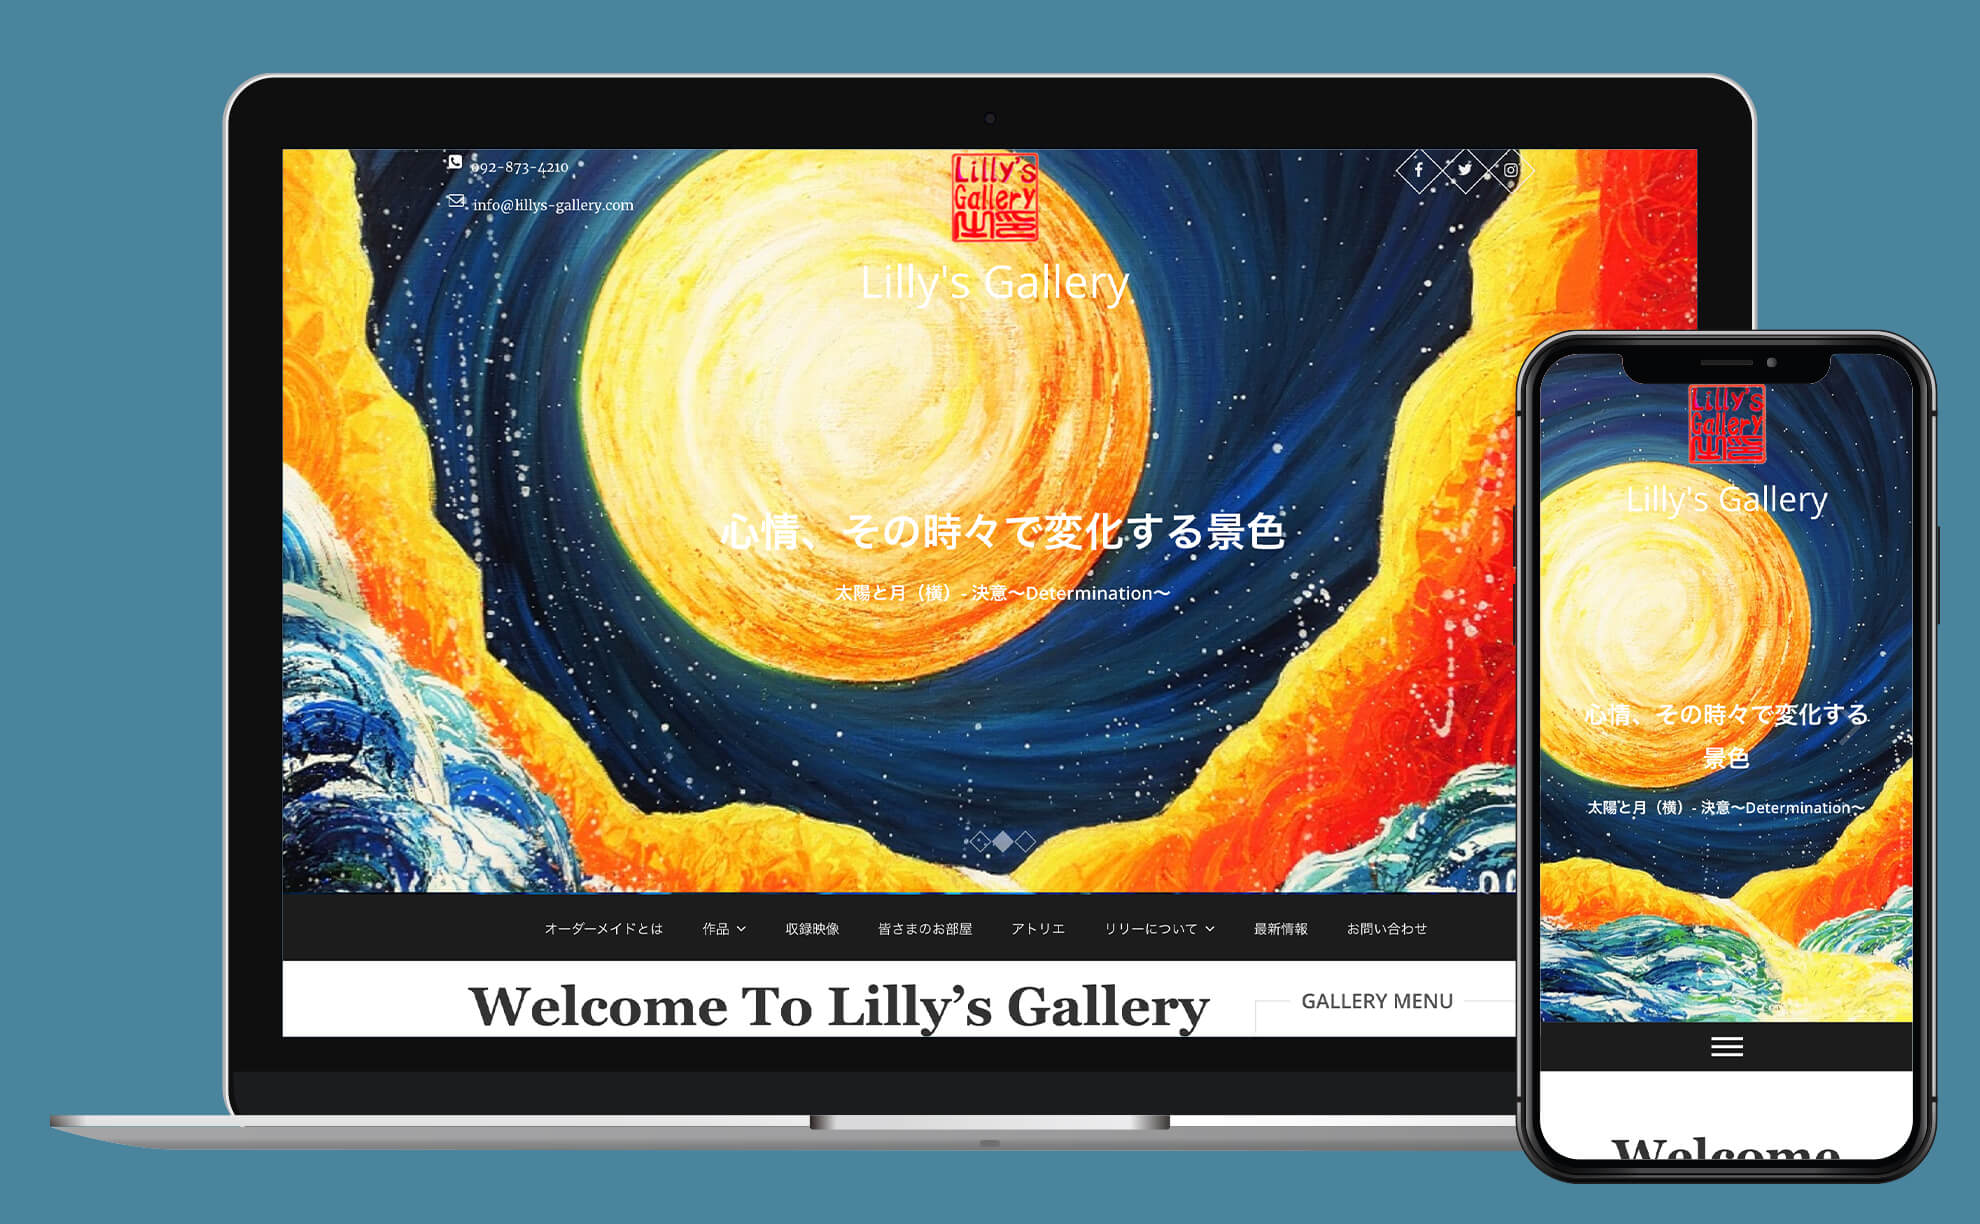 LILLY'S GALLERY